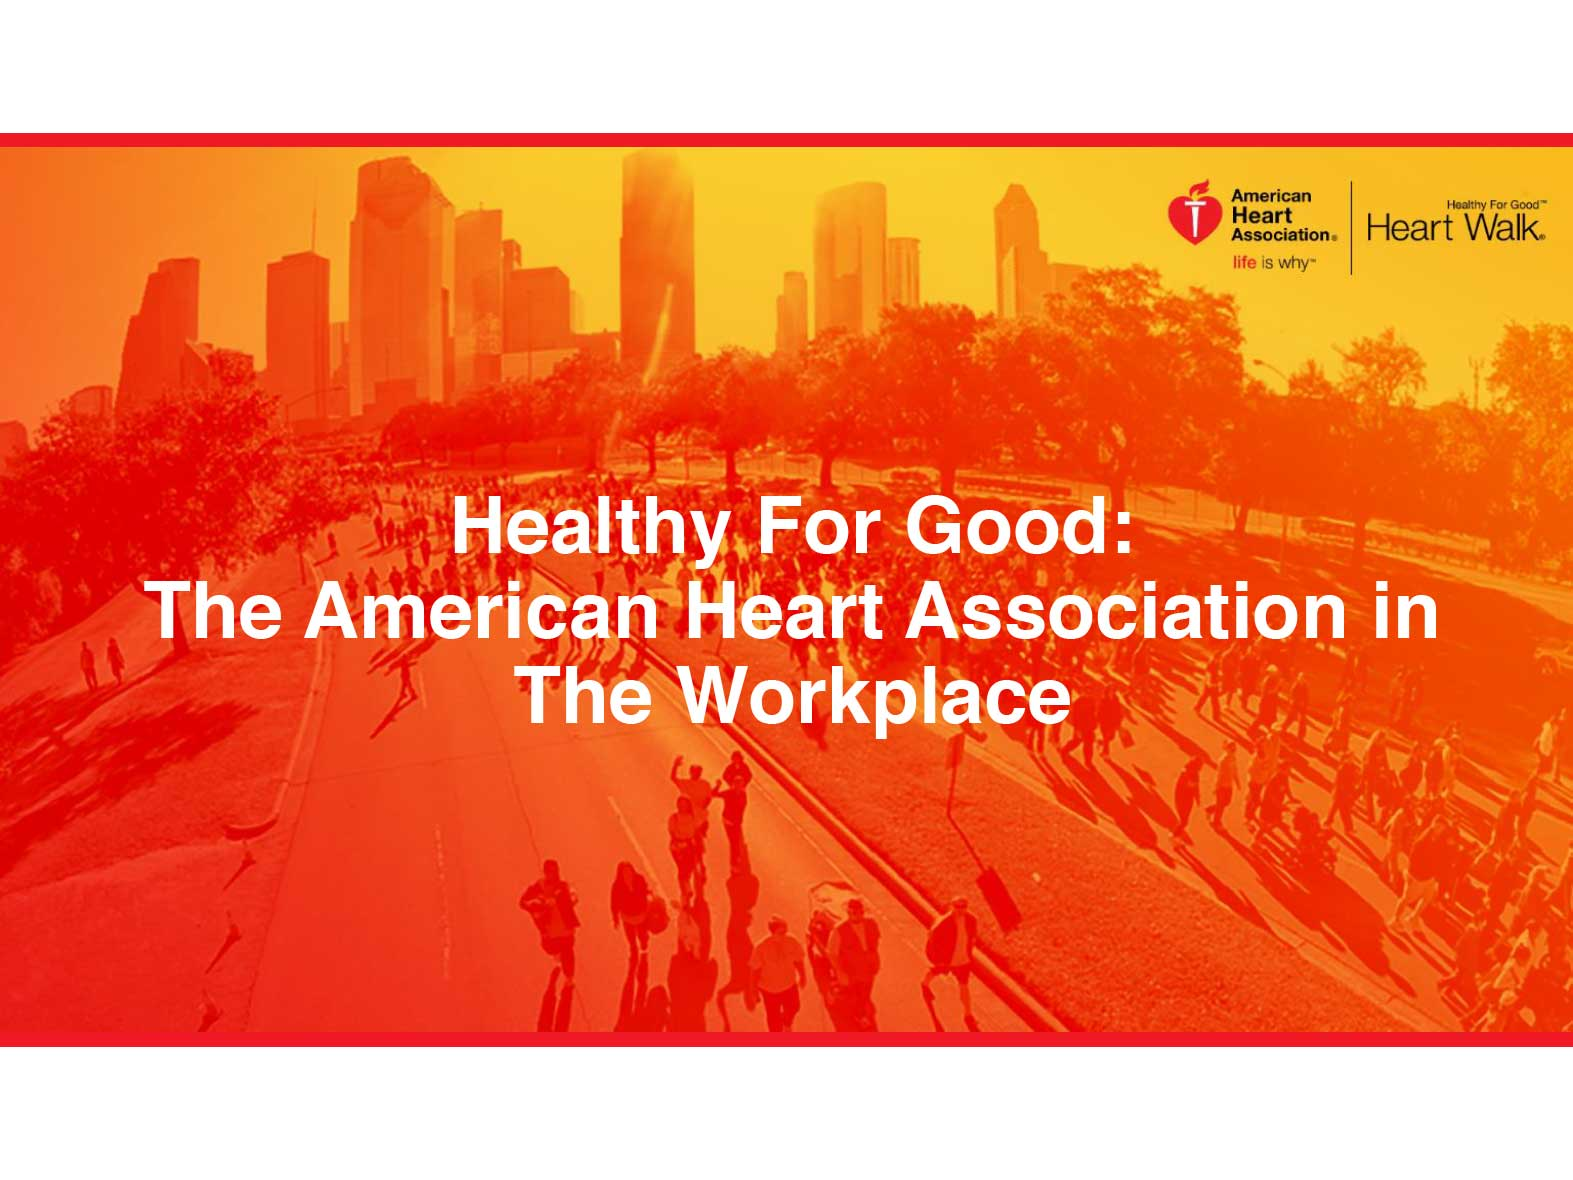 Healthy For Good: The American Heart Association in The Workplace